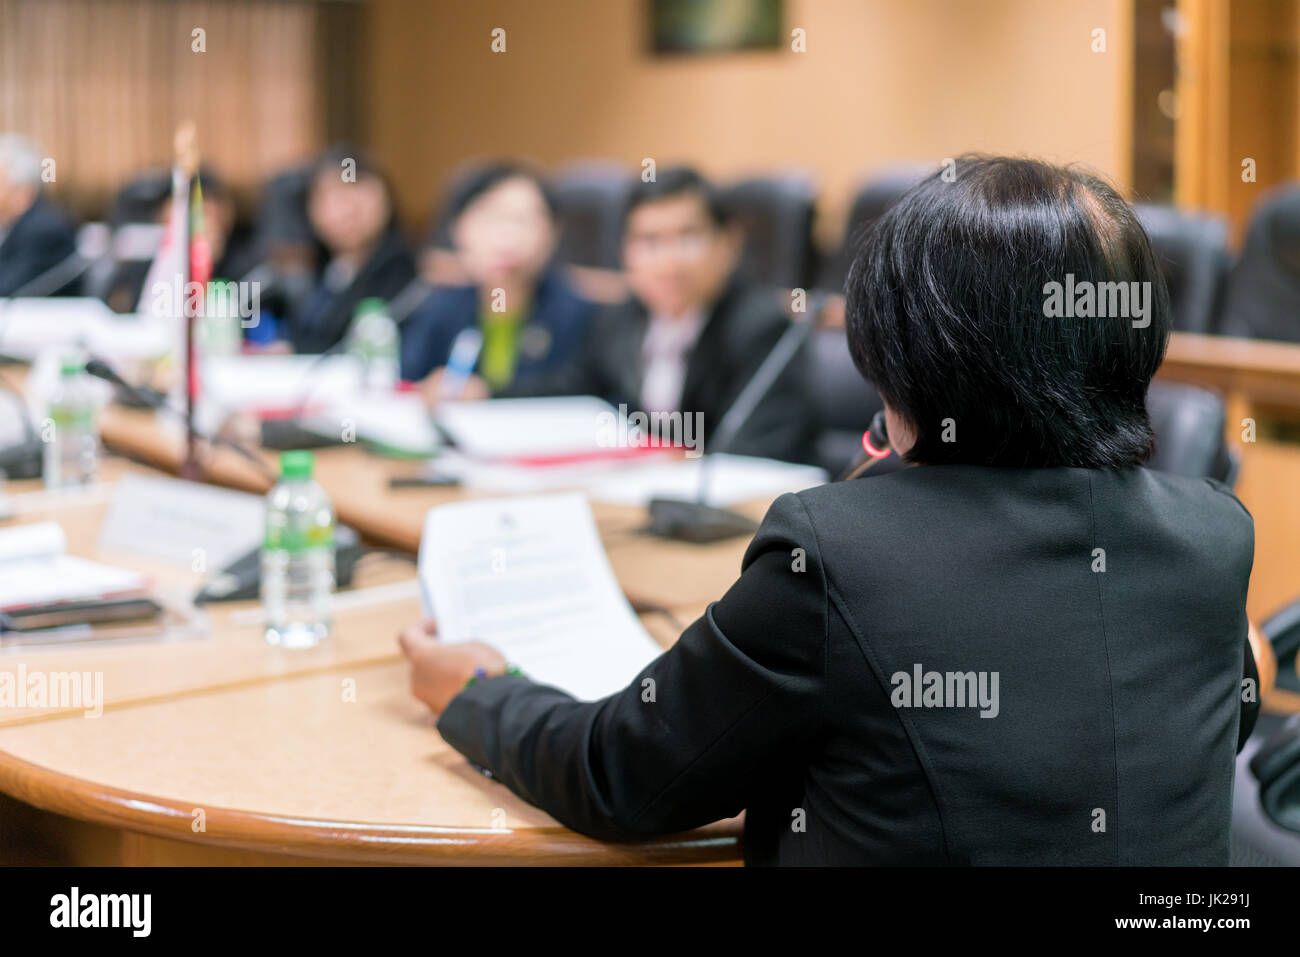 Businesswoman speaker with microphone making presentation at business conference. Business people meeting conference - Stock Image